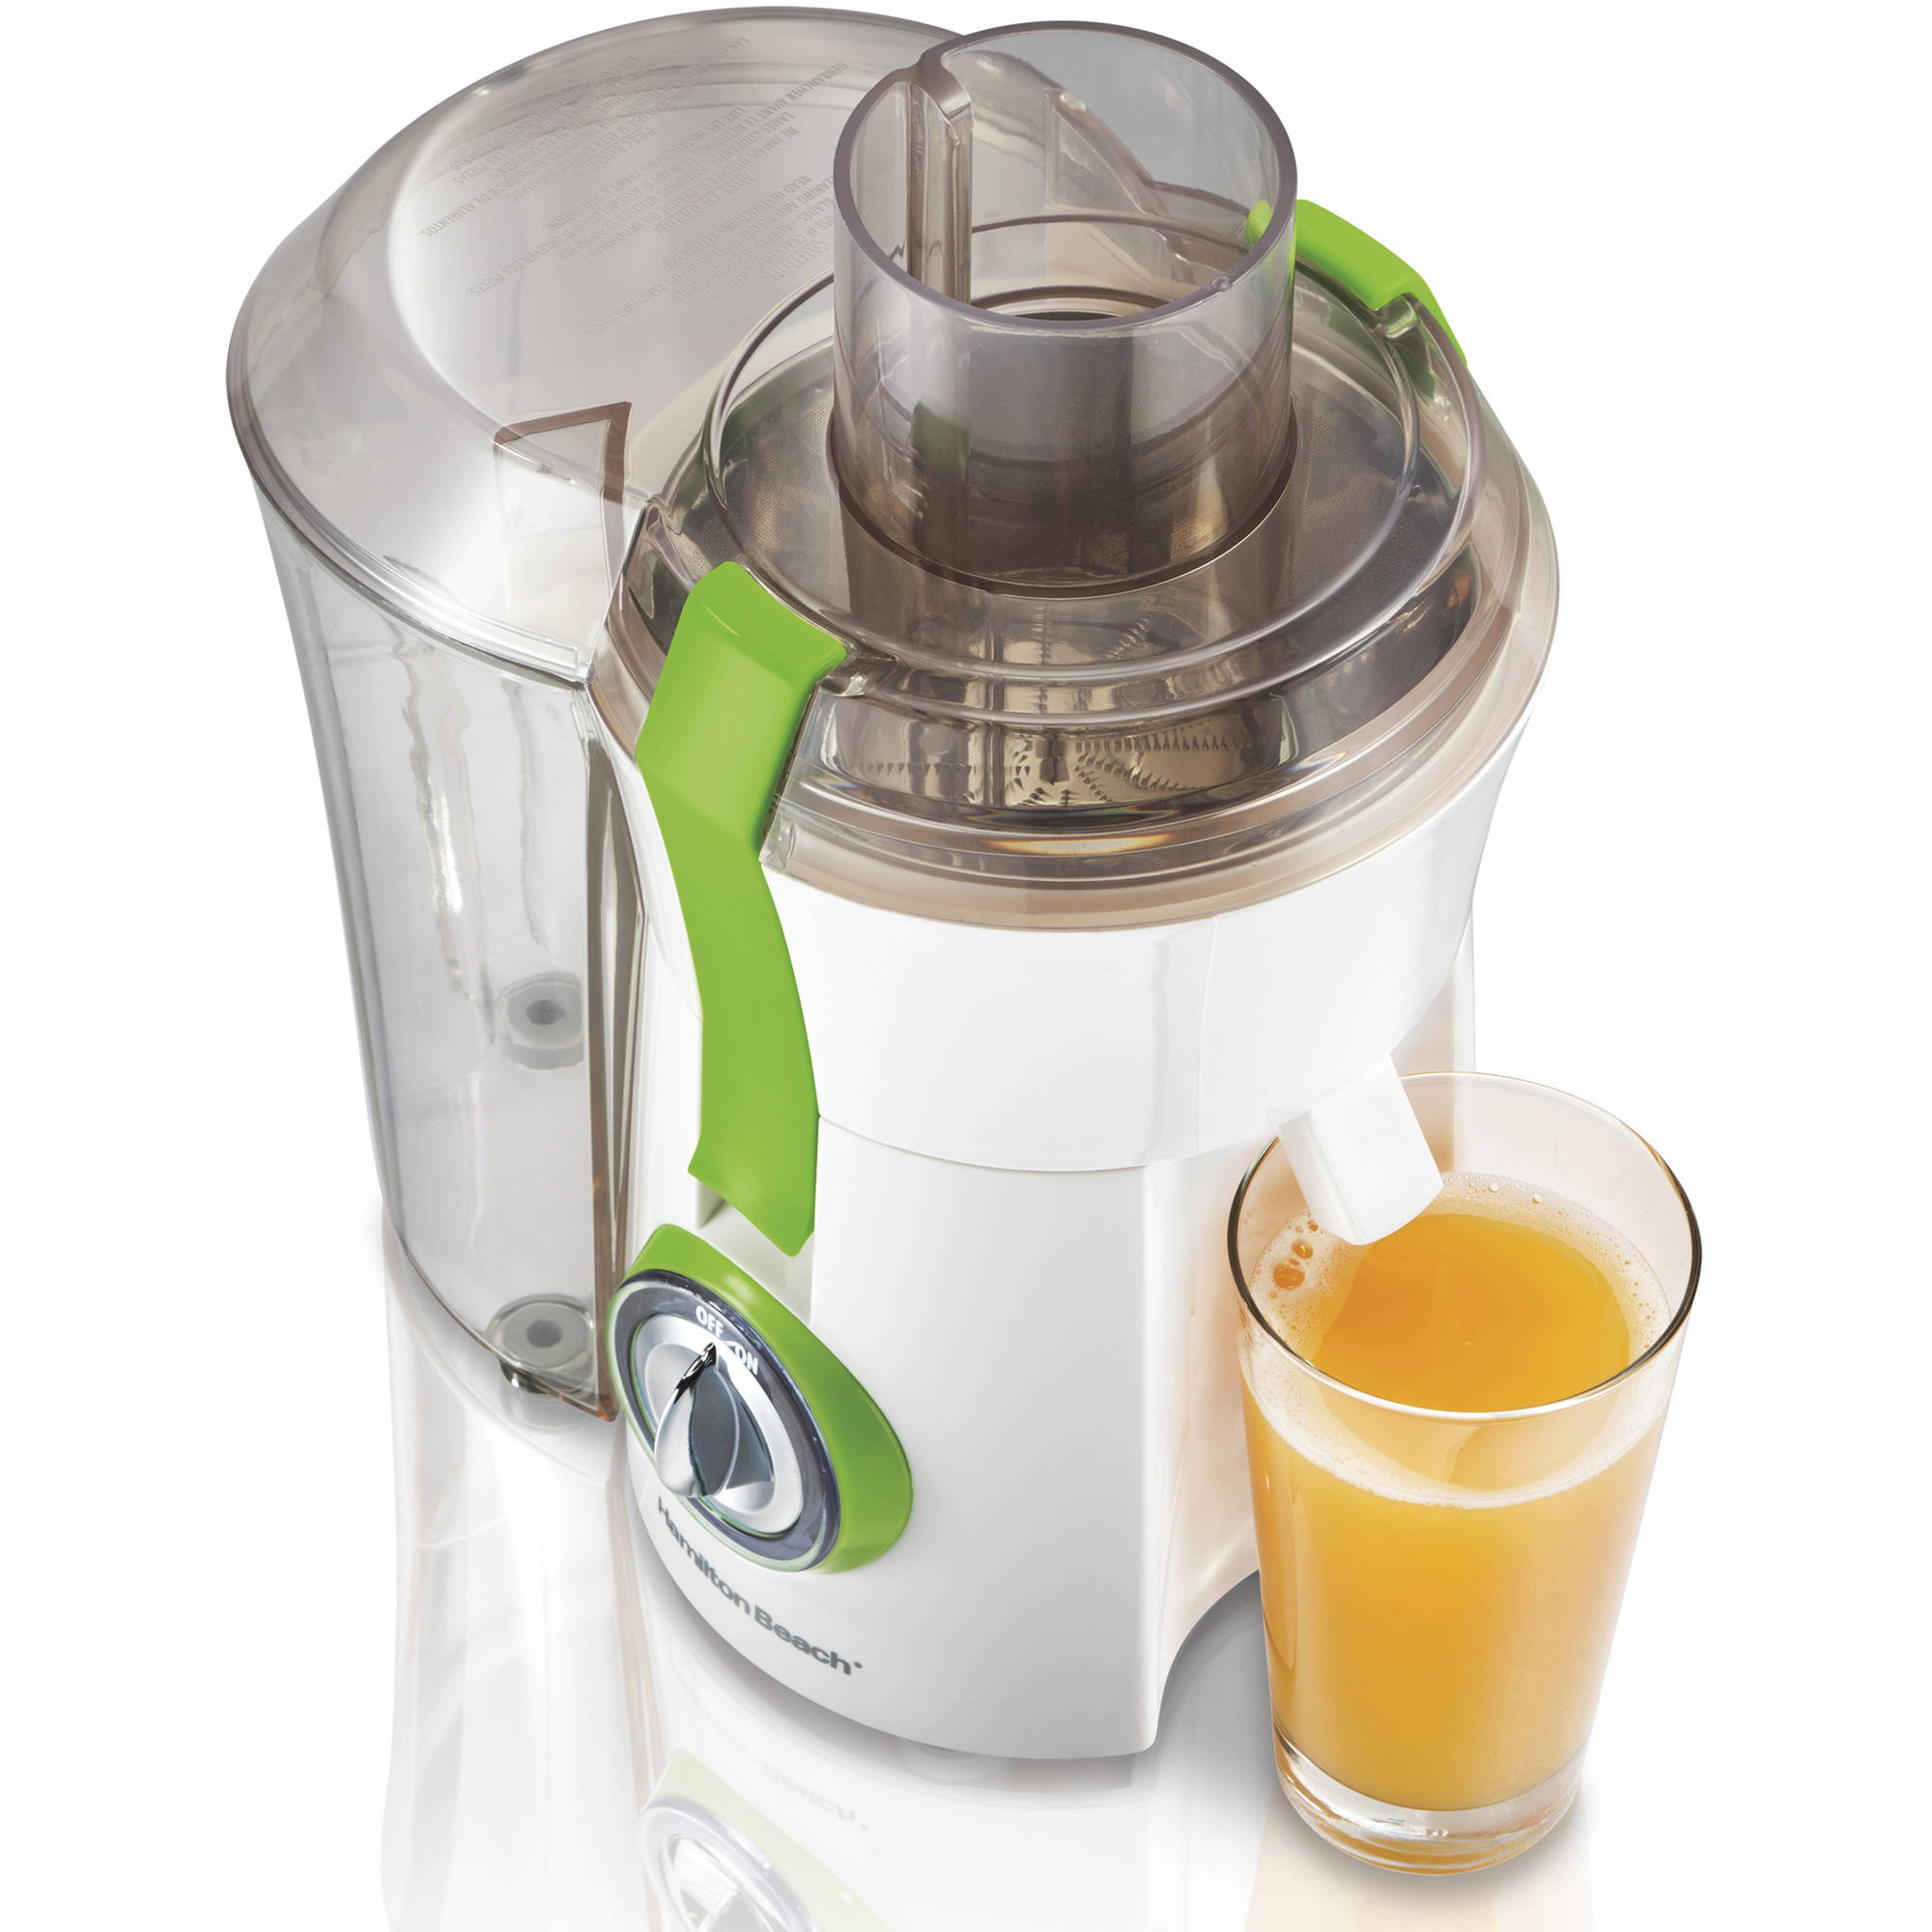 Refurbished Hamilton Beach Big Mouth Juice Extractor | Model# R67602